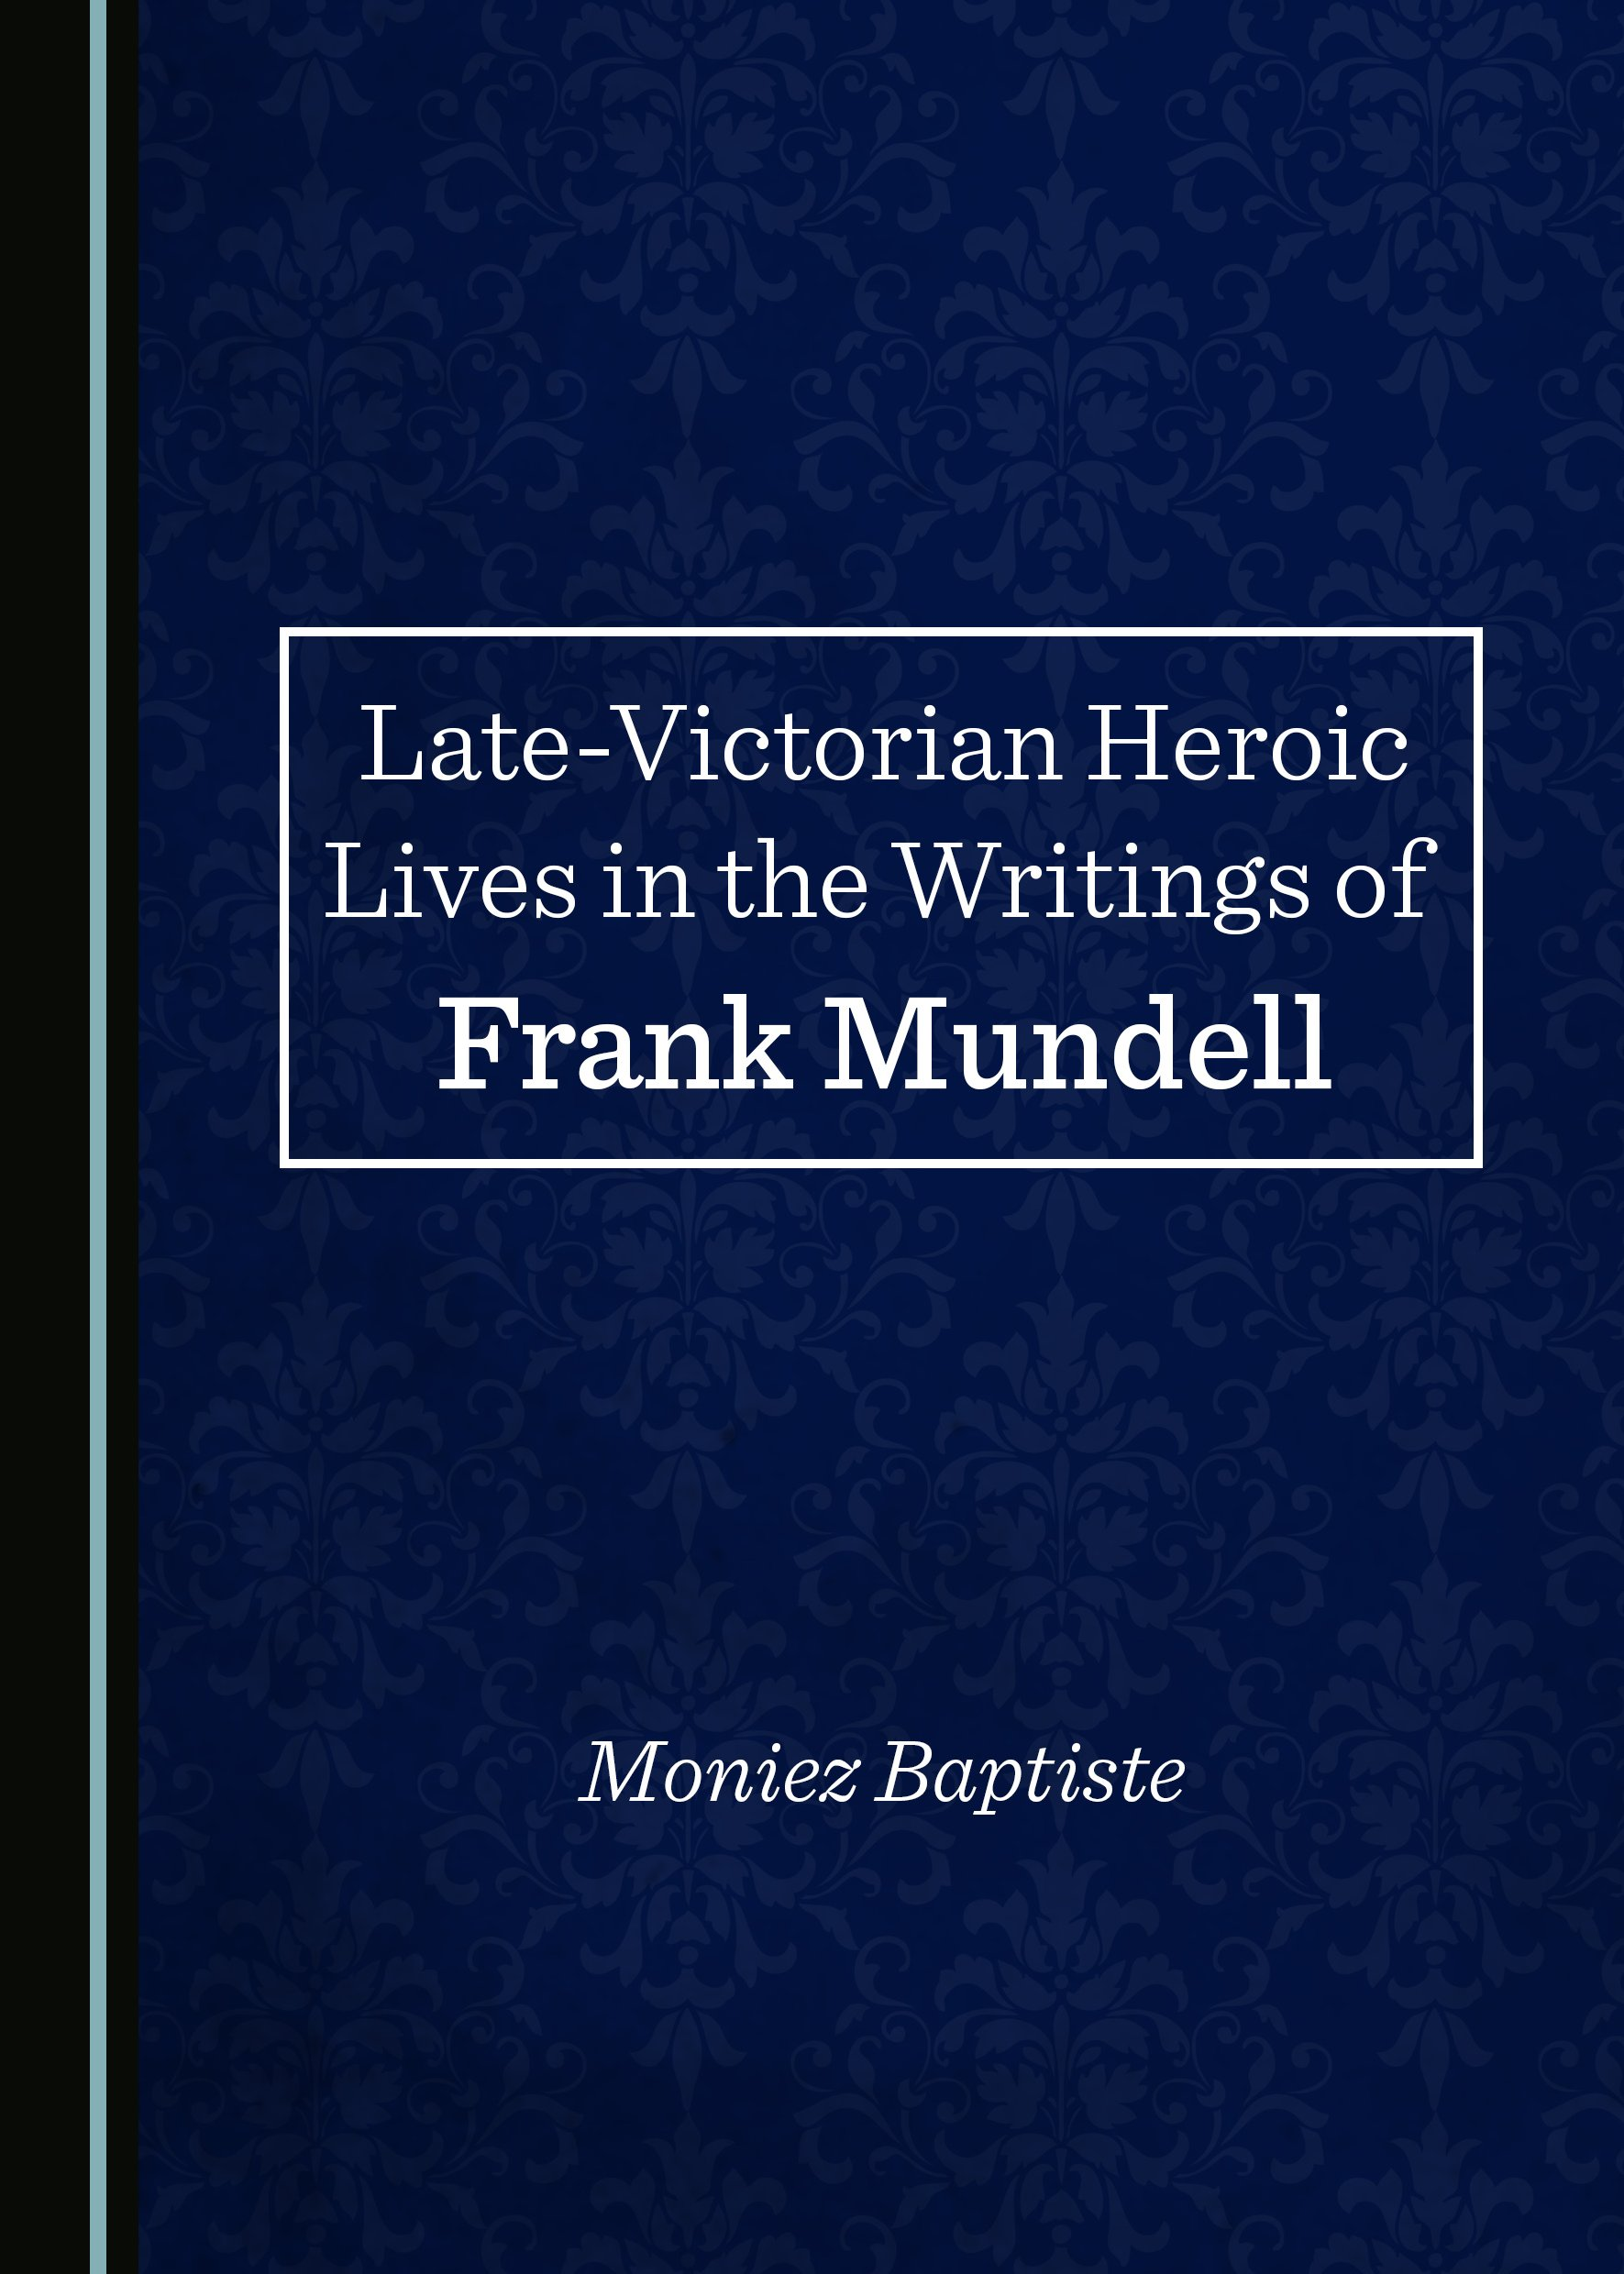 Late-Victorian Heroic Lives in the Writings of Frank Mundell